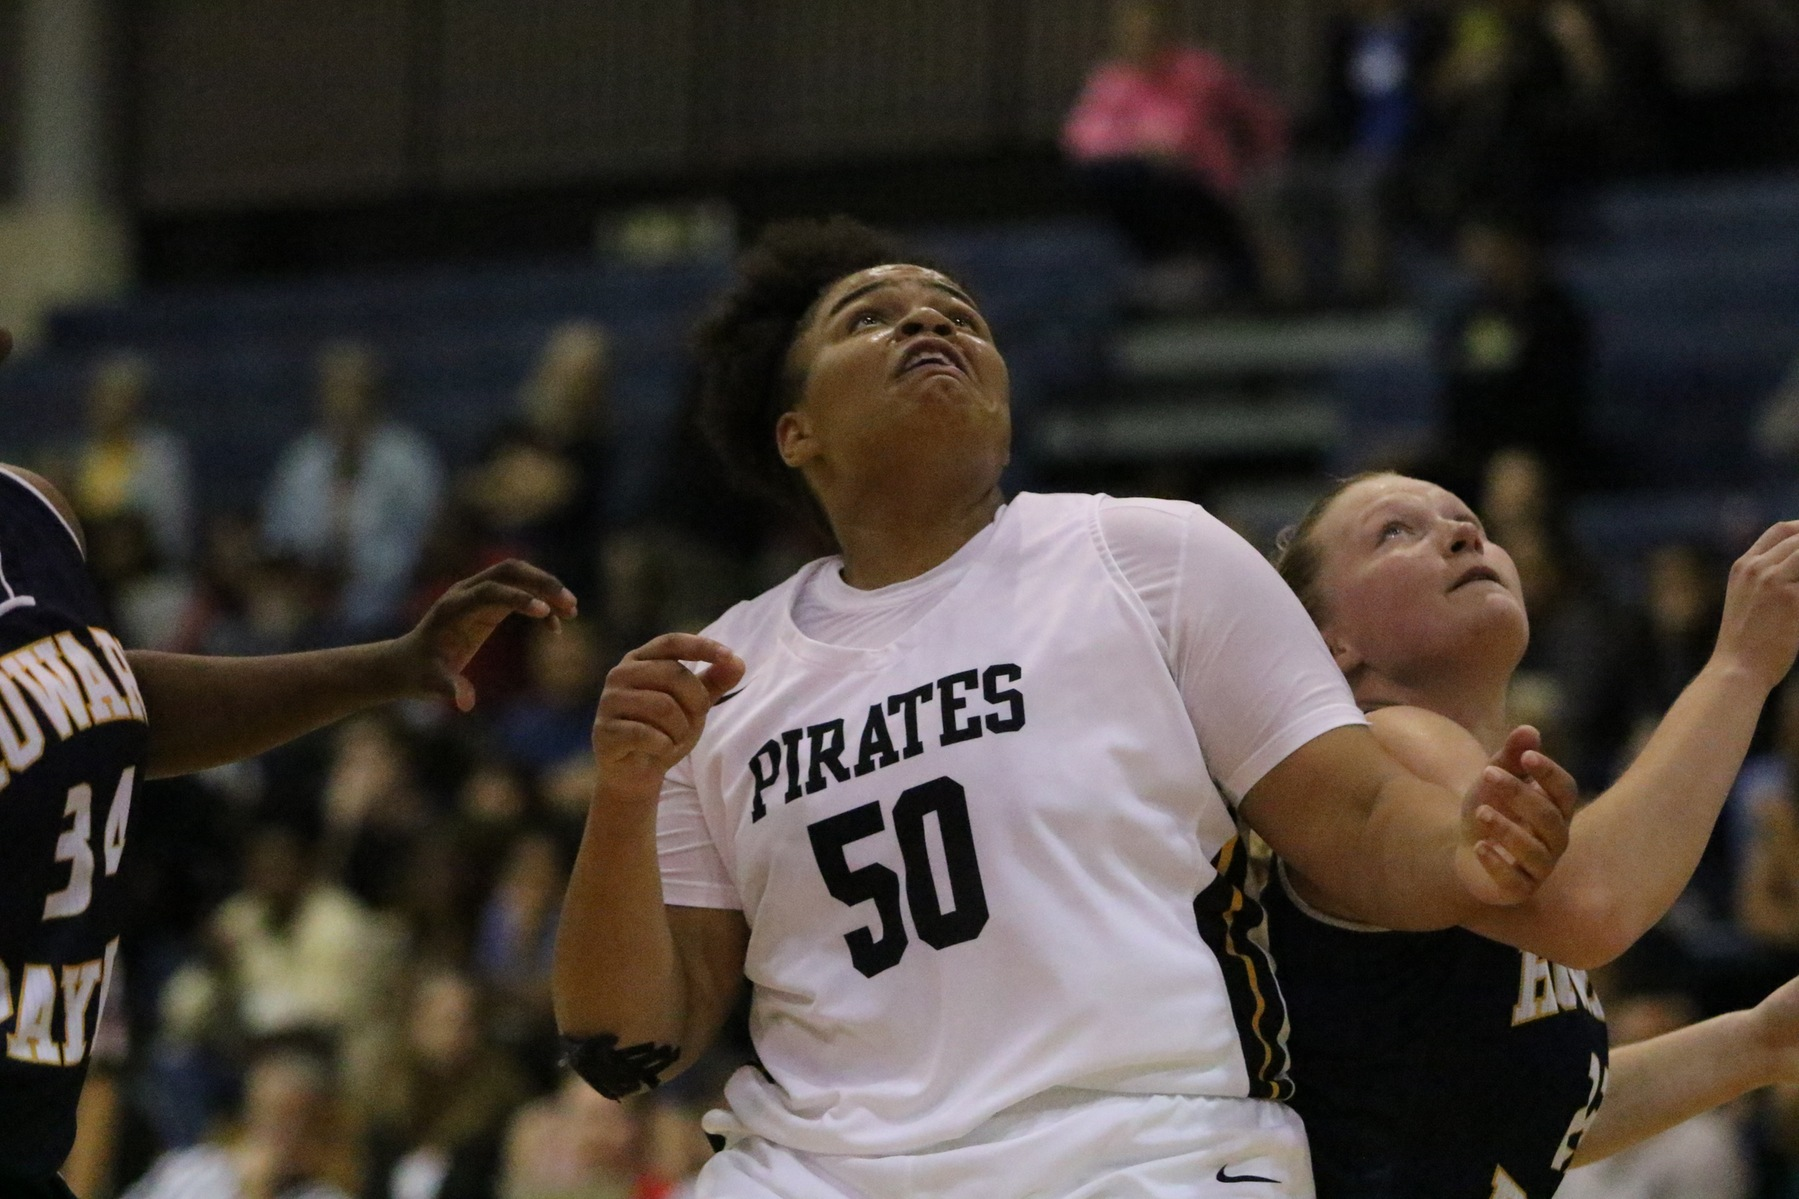 Women's Basketball Earns First Victory Of The Season